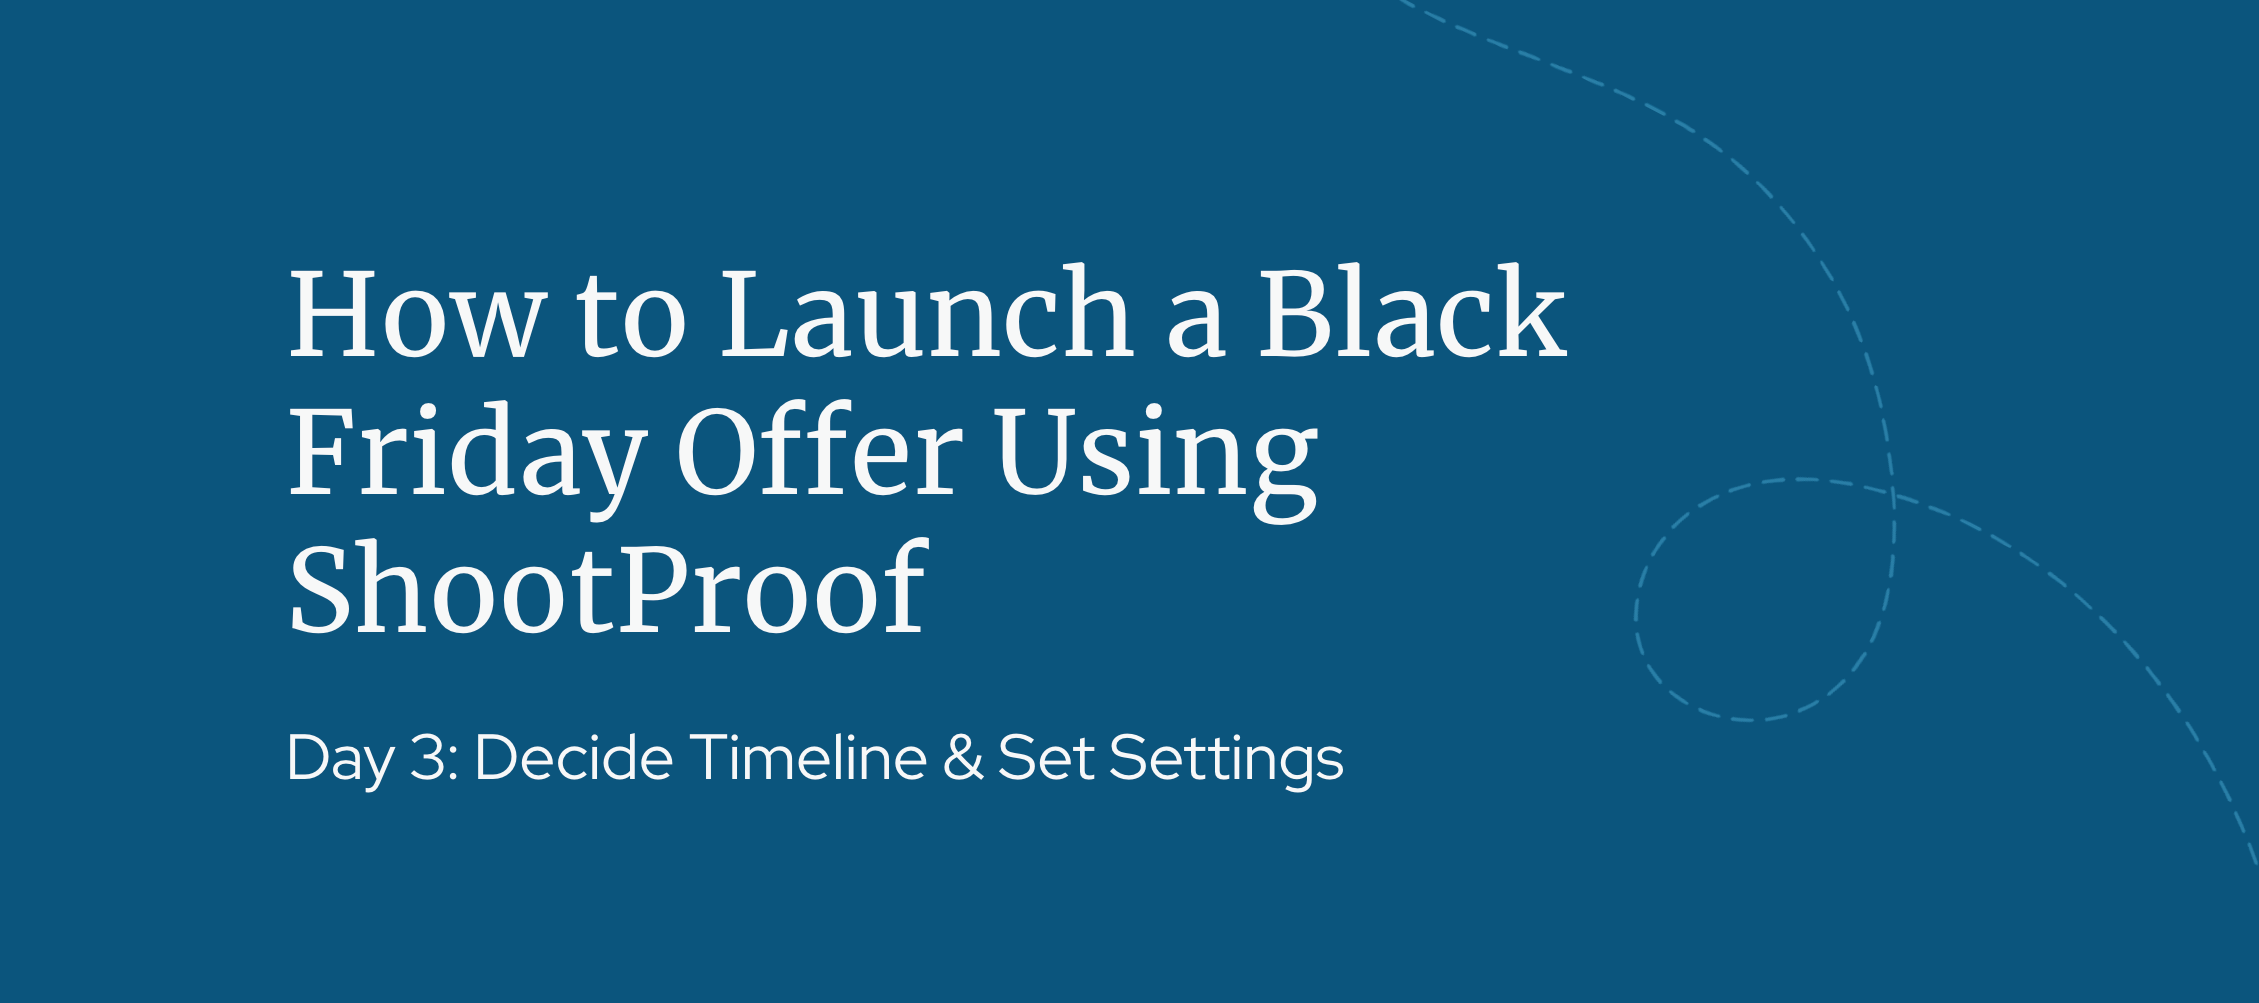 Day 3: How to Launch a Black Friday Offer Using ShootProof